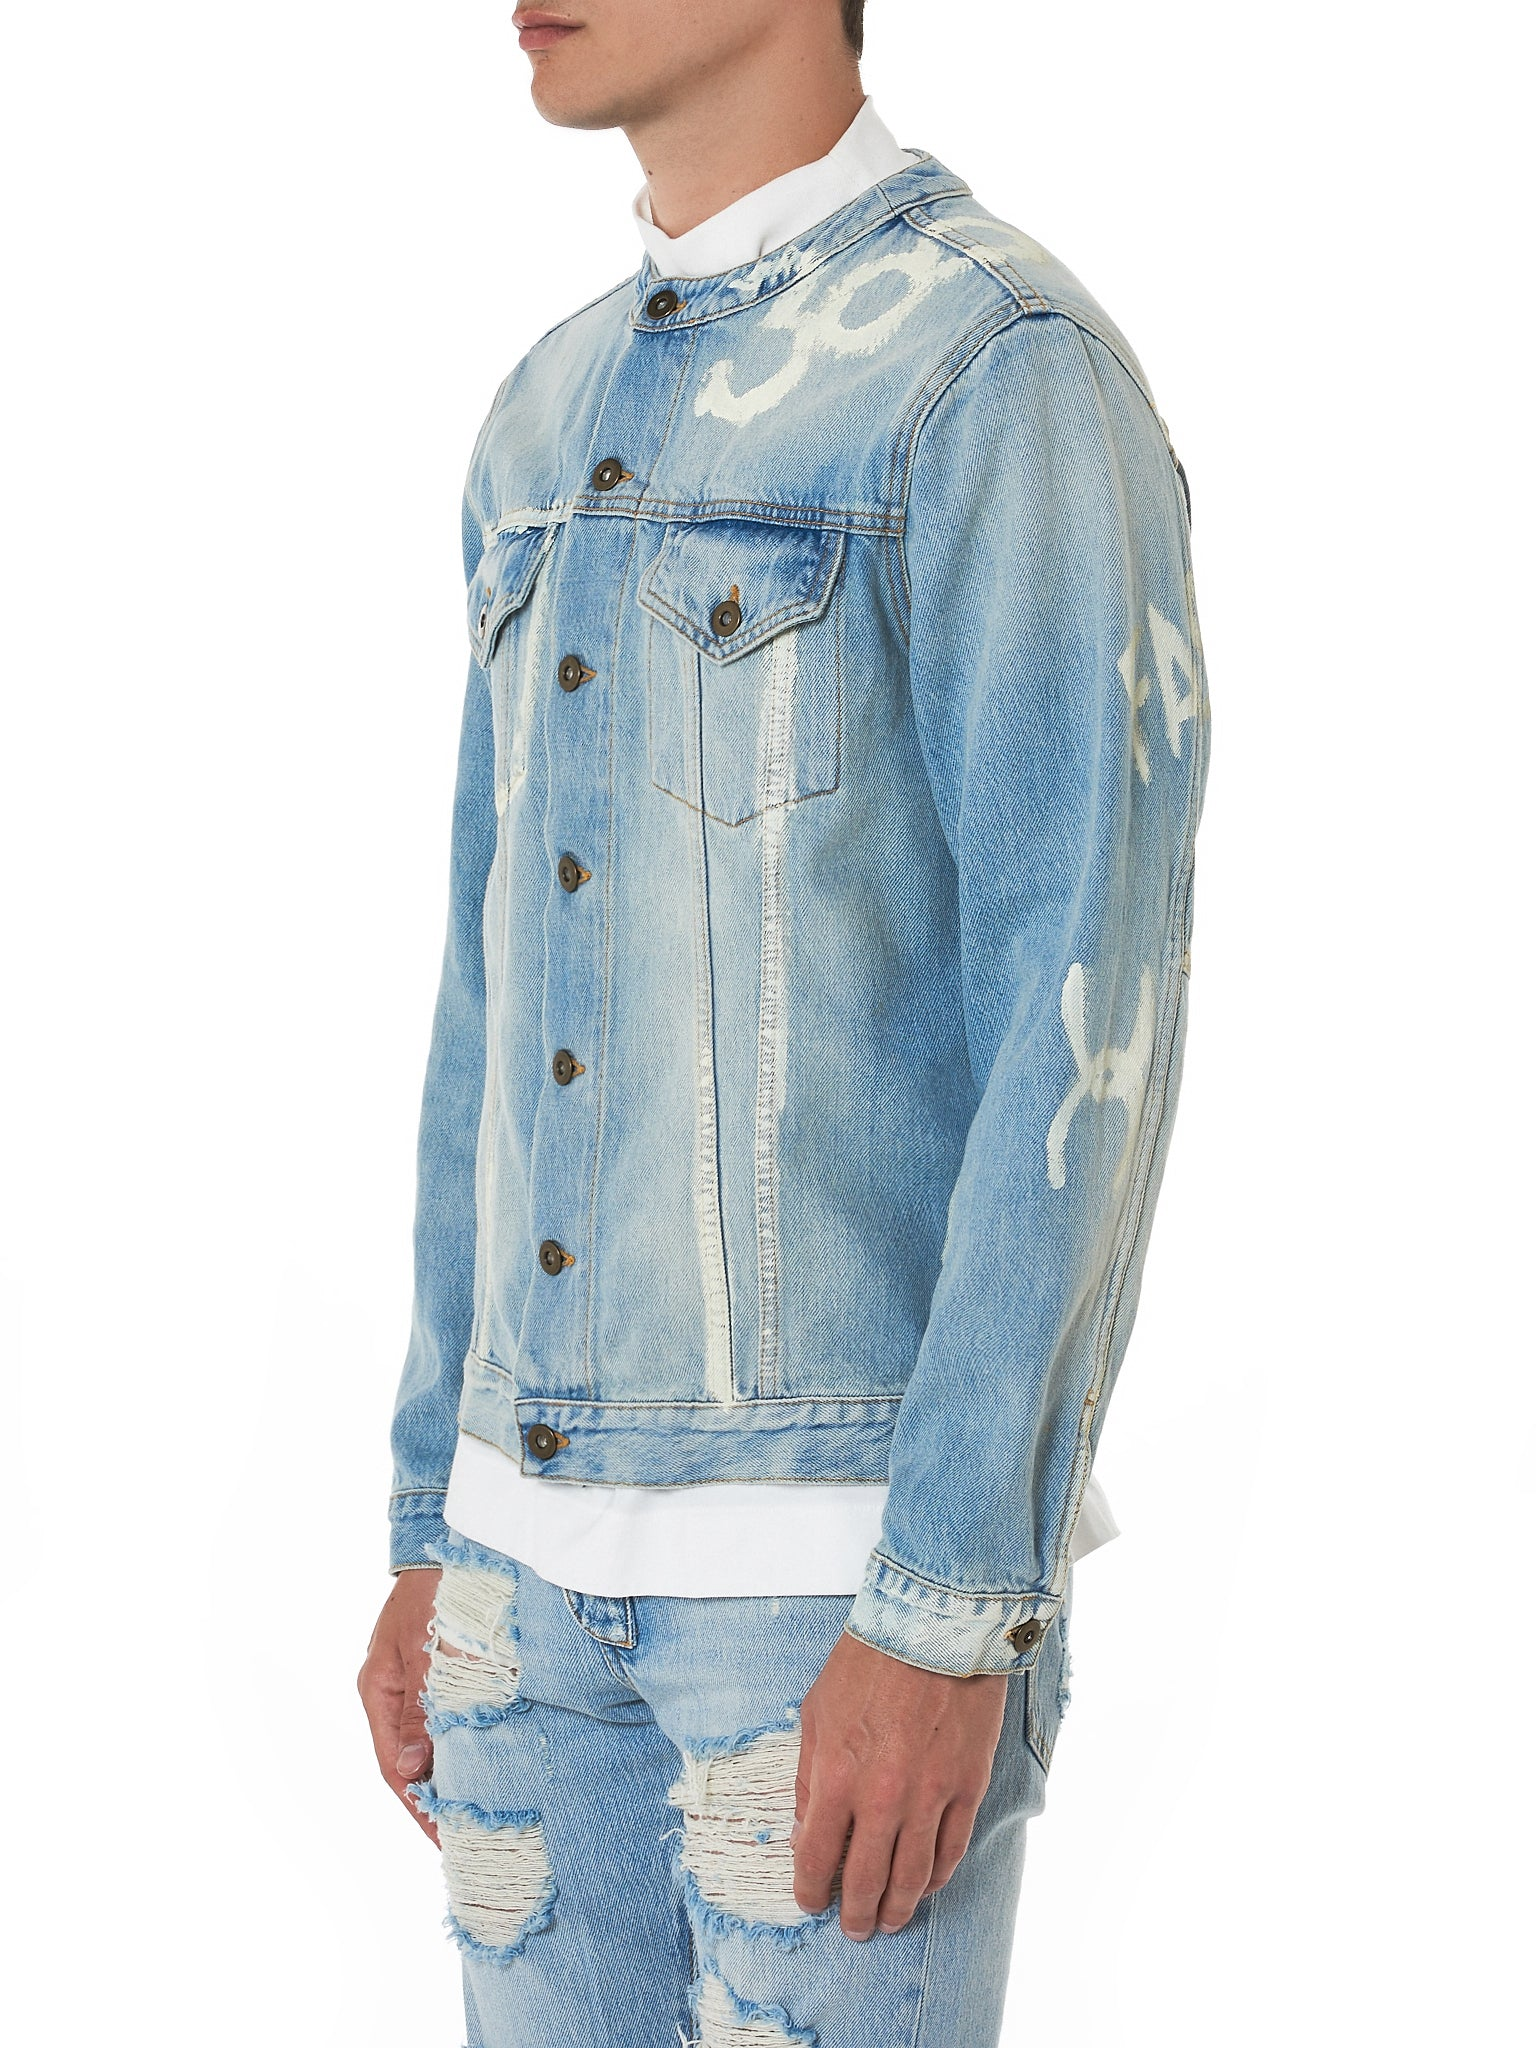 IH NOM UH NIT Denim Jacket - Hlorenzo Side